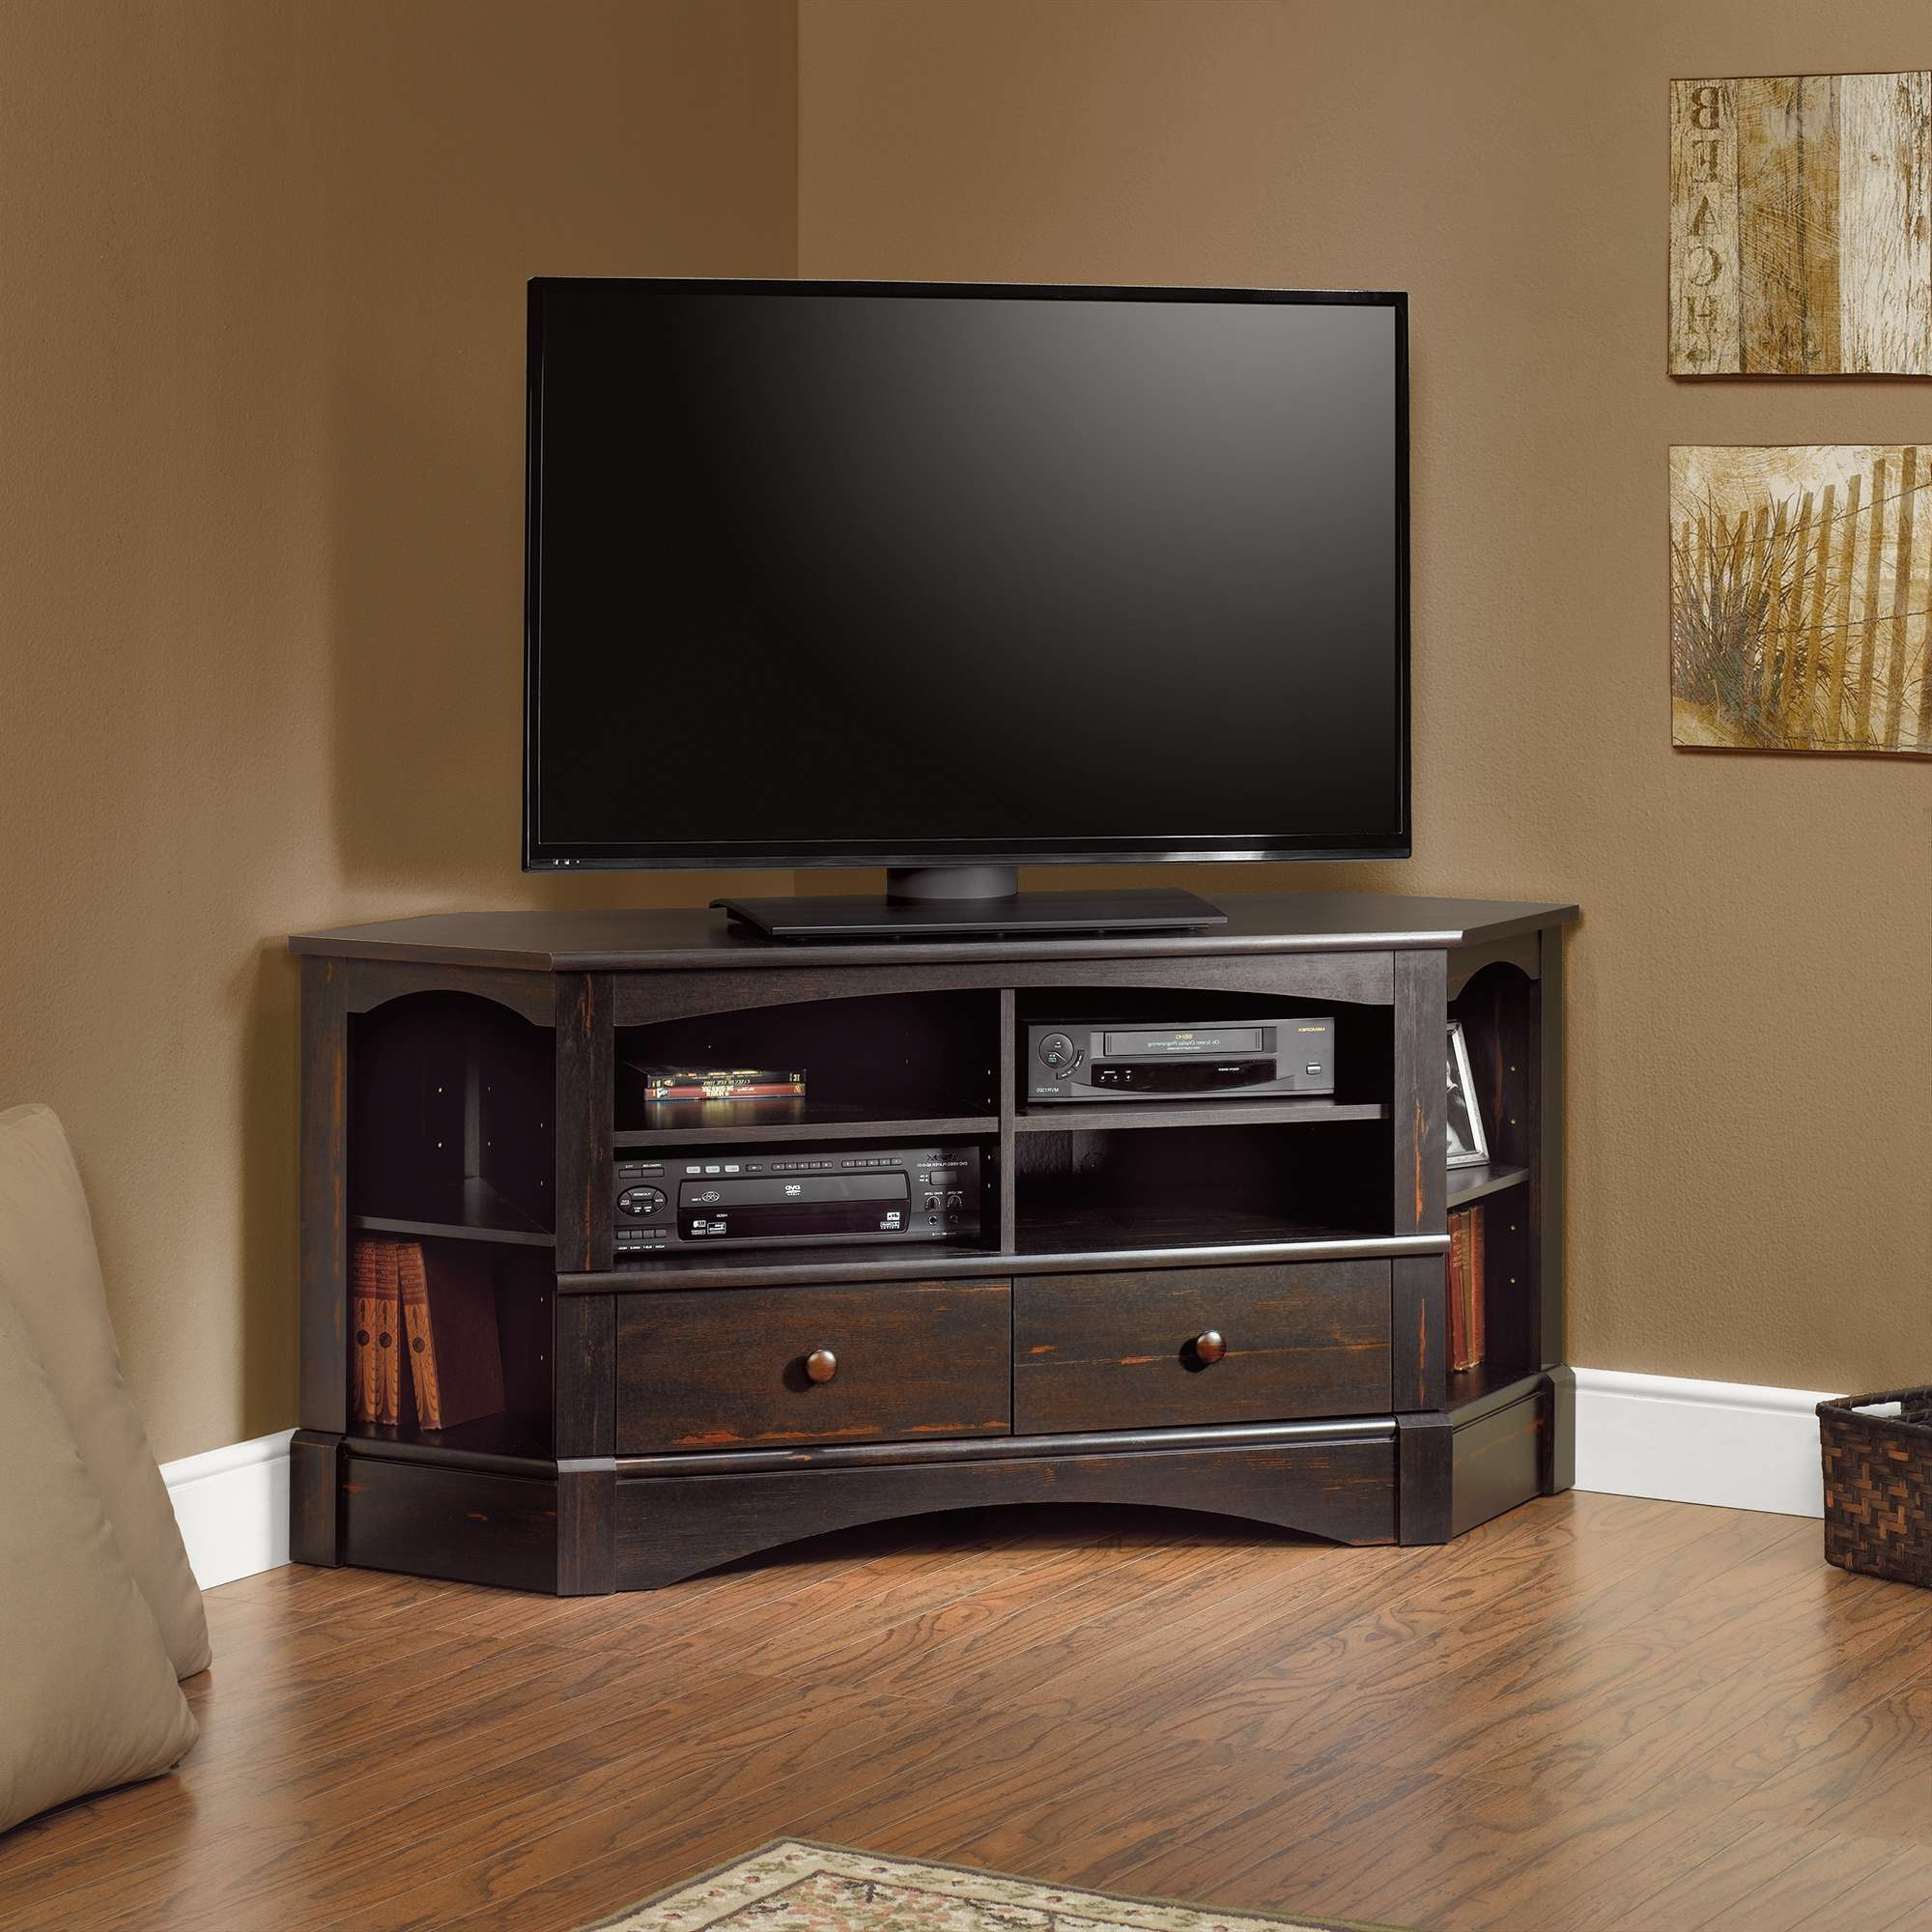 Harbor View | Corner Entertainment Credenza | 402902 | Sauder With Regard To Solid Wood Black Tv Stands (View 7 of 15)